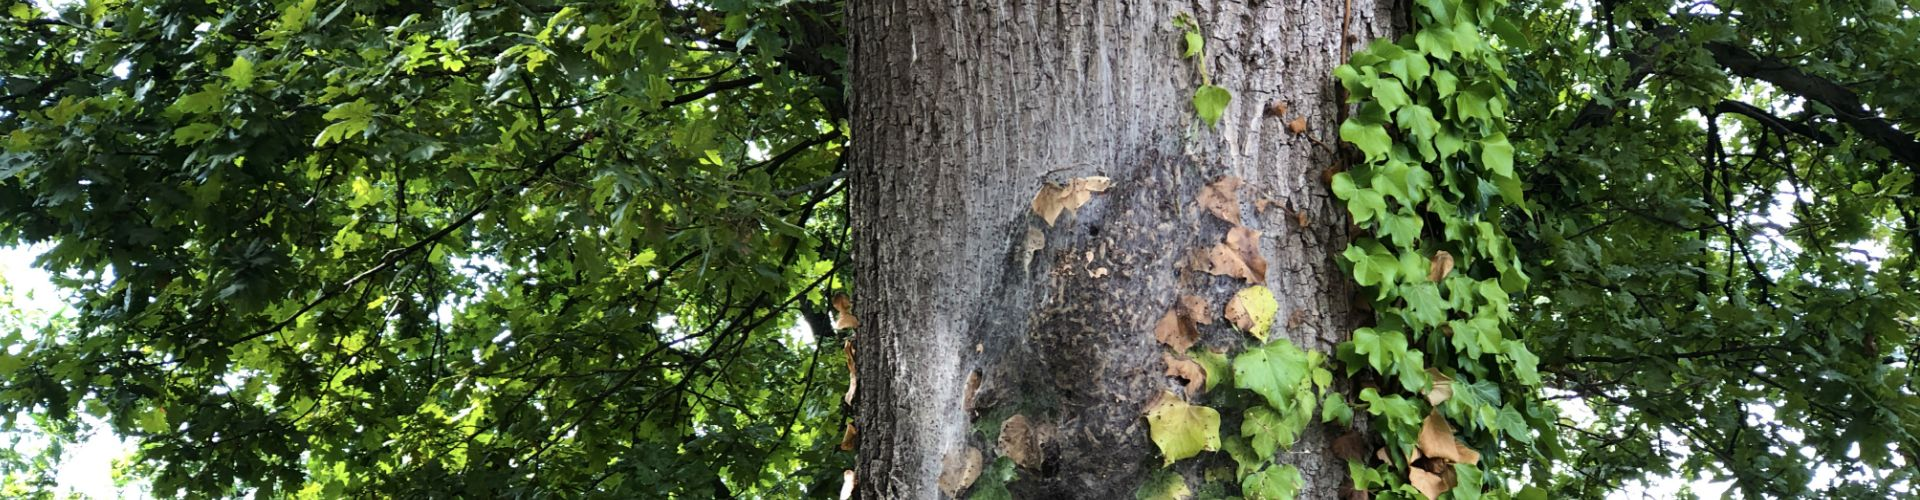 Processionary Caterpillar invading oaktrees with nests